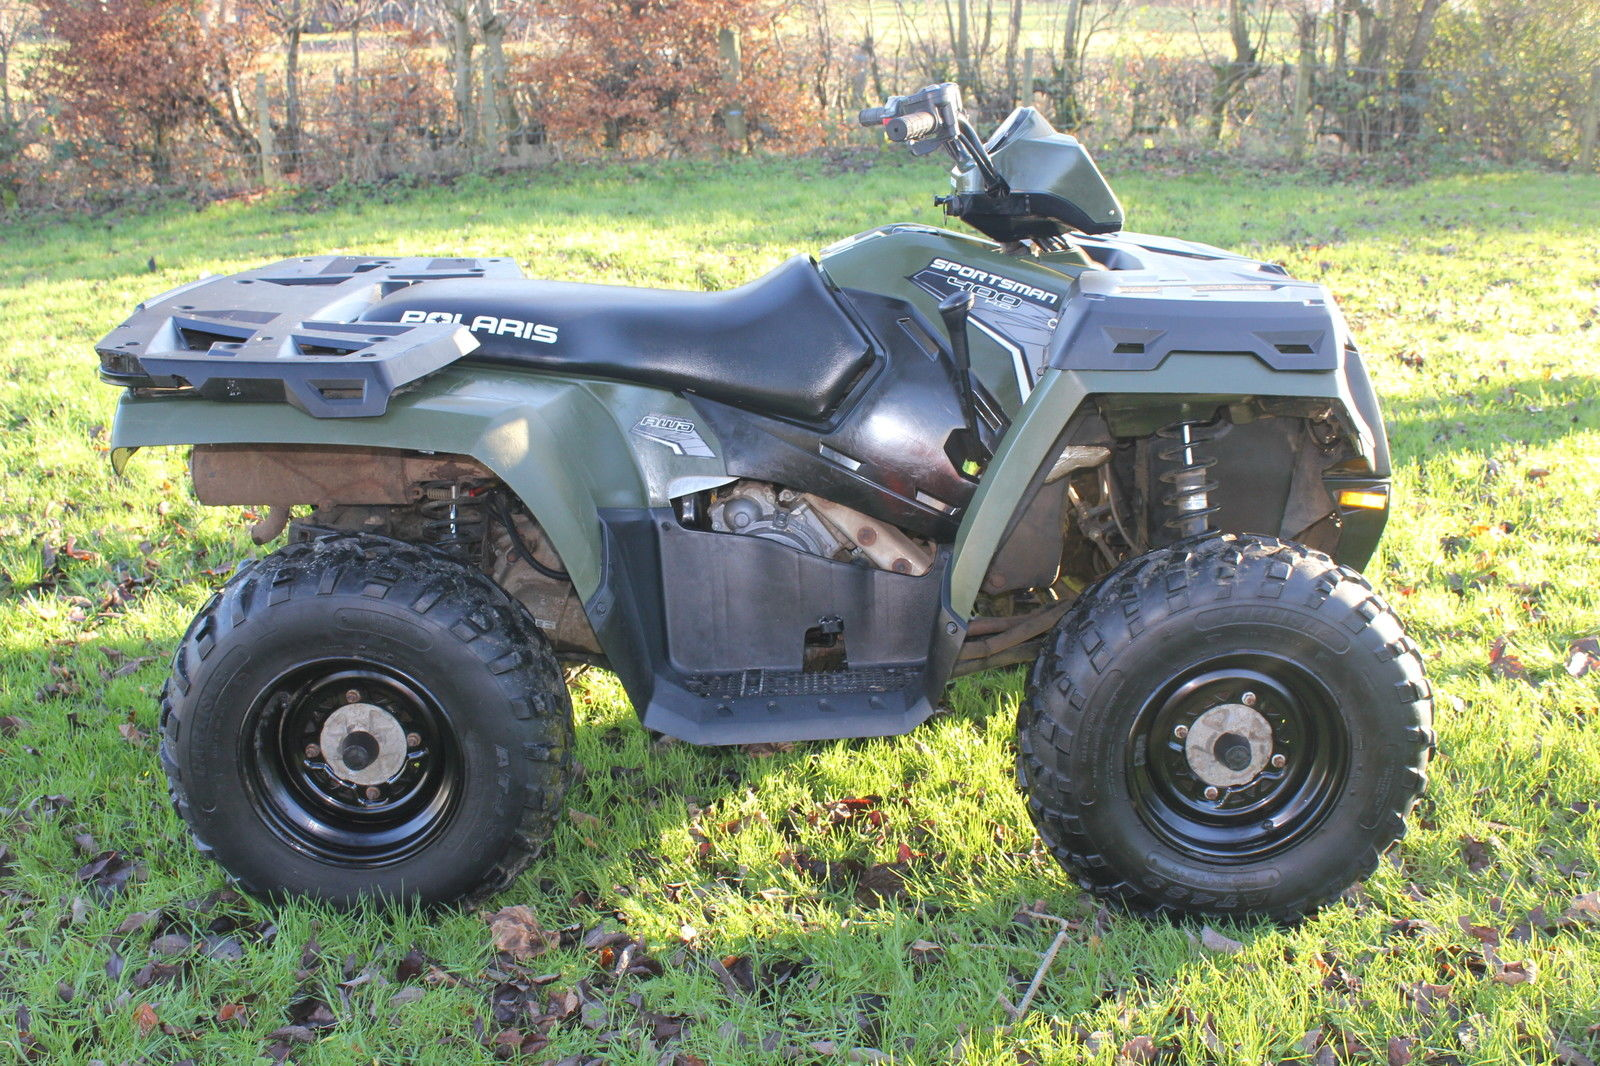 stunning polaris sportsman 400 2012 4wd 4x4 quad atv utv low hours no vat. Black Bedroom Furniture Sets. Home Design Ideas